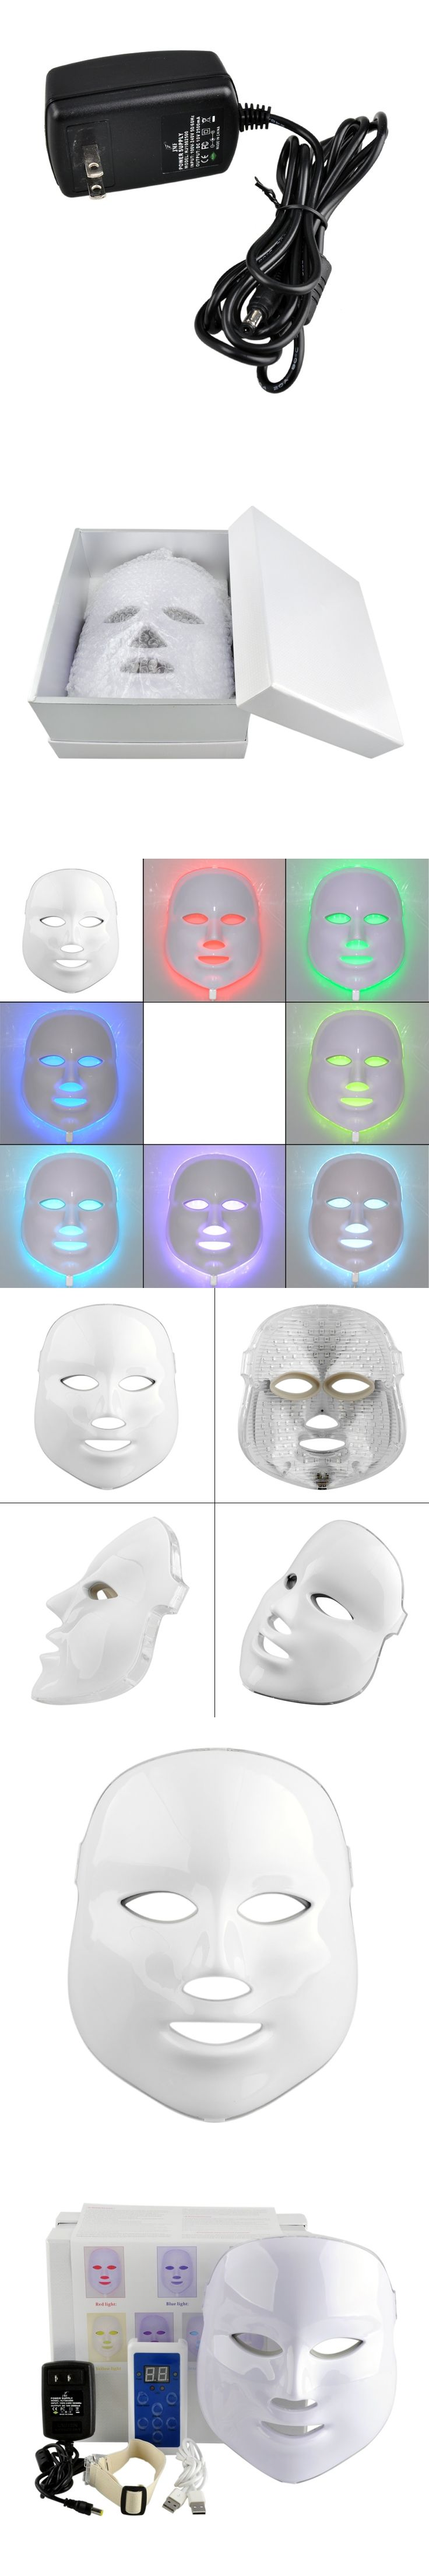 NEW Korean Photodynamic LED Facial Mask Home Use Beauty Instrument Anti acne Skin Rejuvenation LED Photodynamic Beauty Face Mask